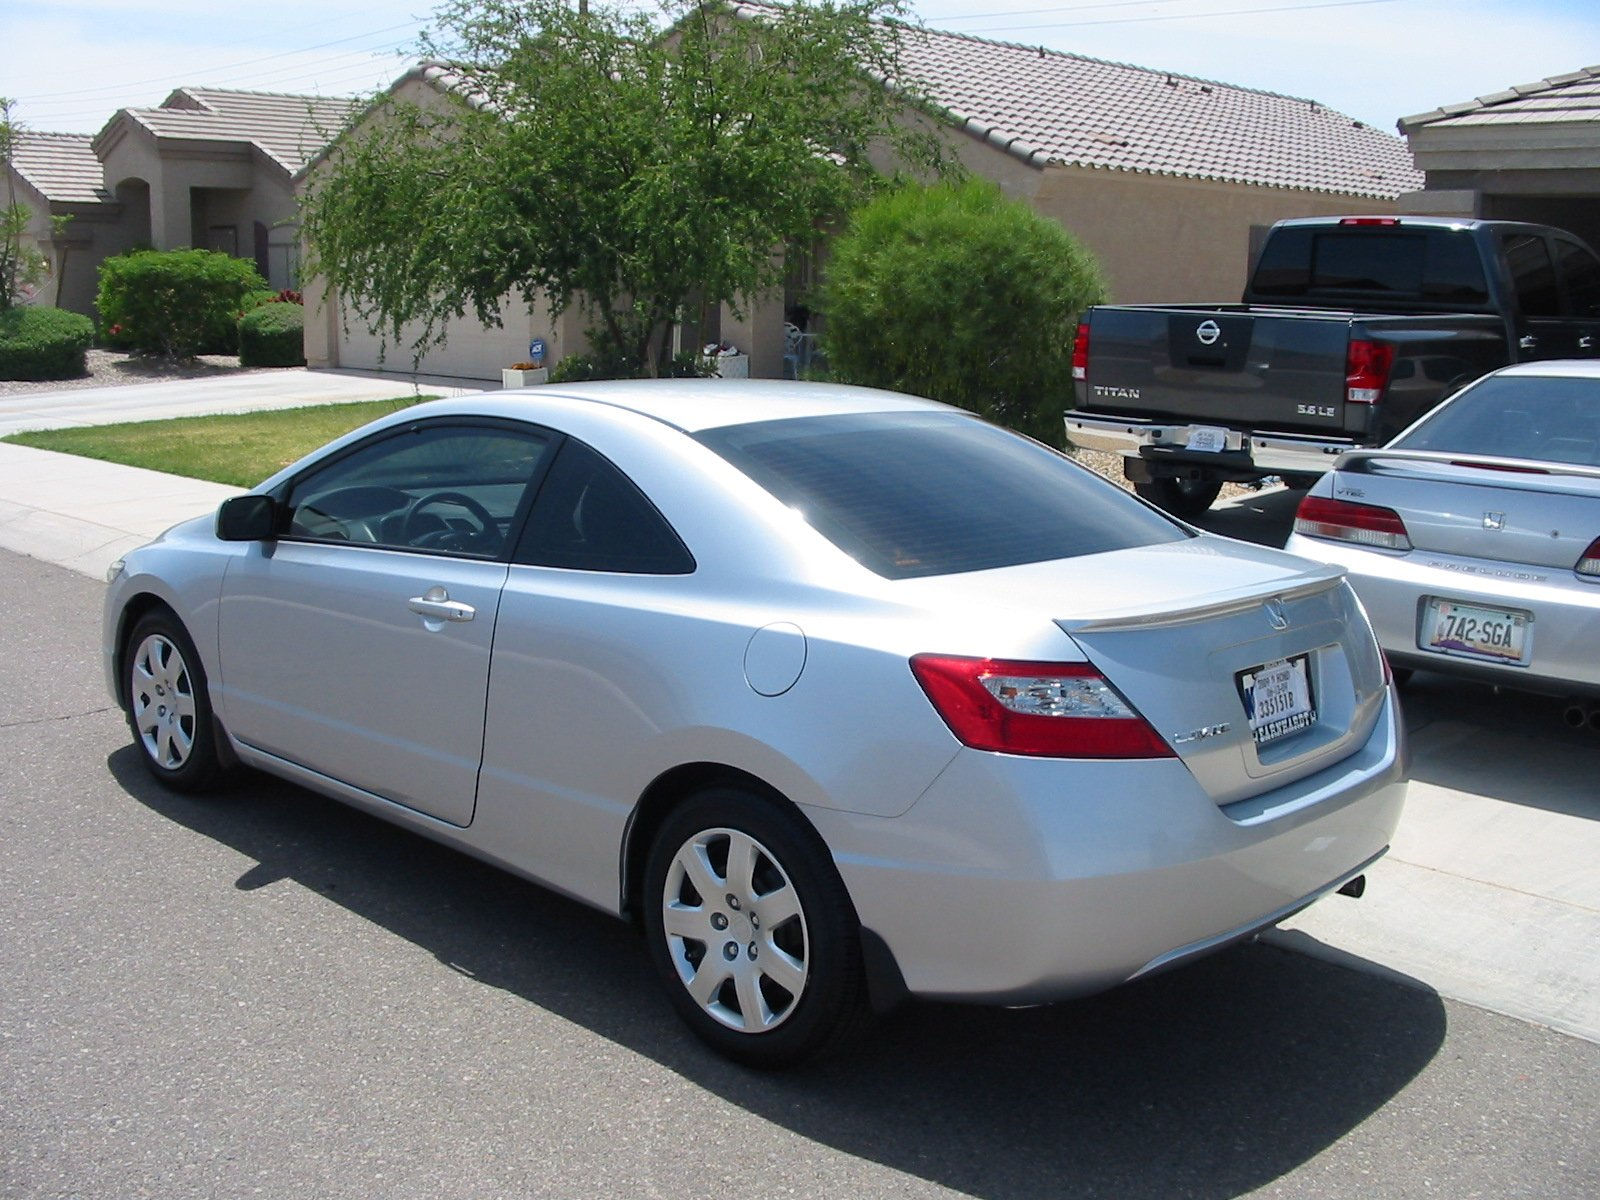 Excellent Honda Civic Coupe Review New Cars Used Car Reviews With Honda  Civic Coupe Lx